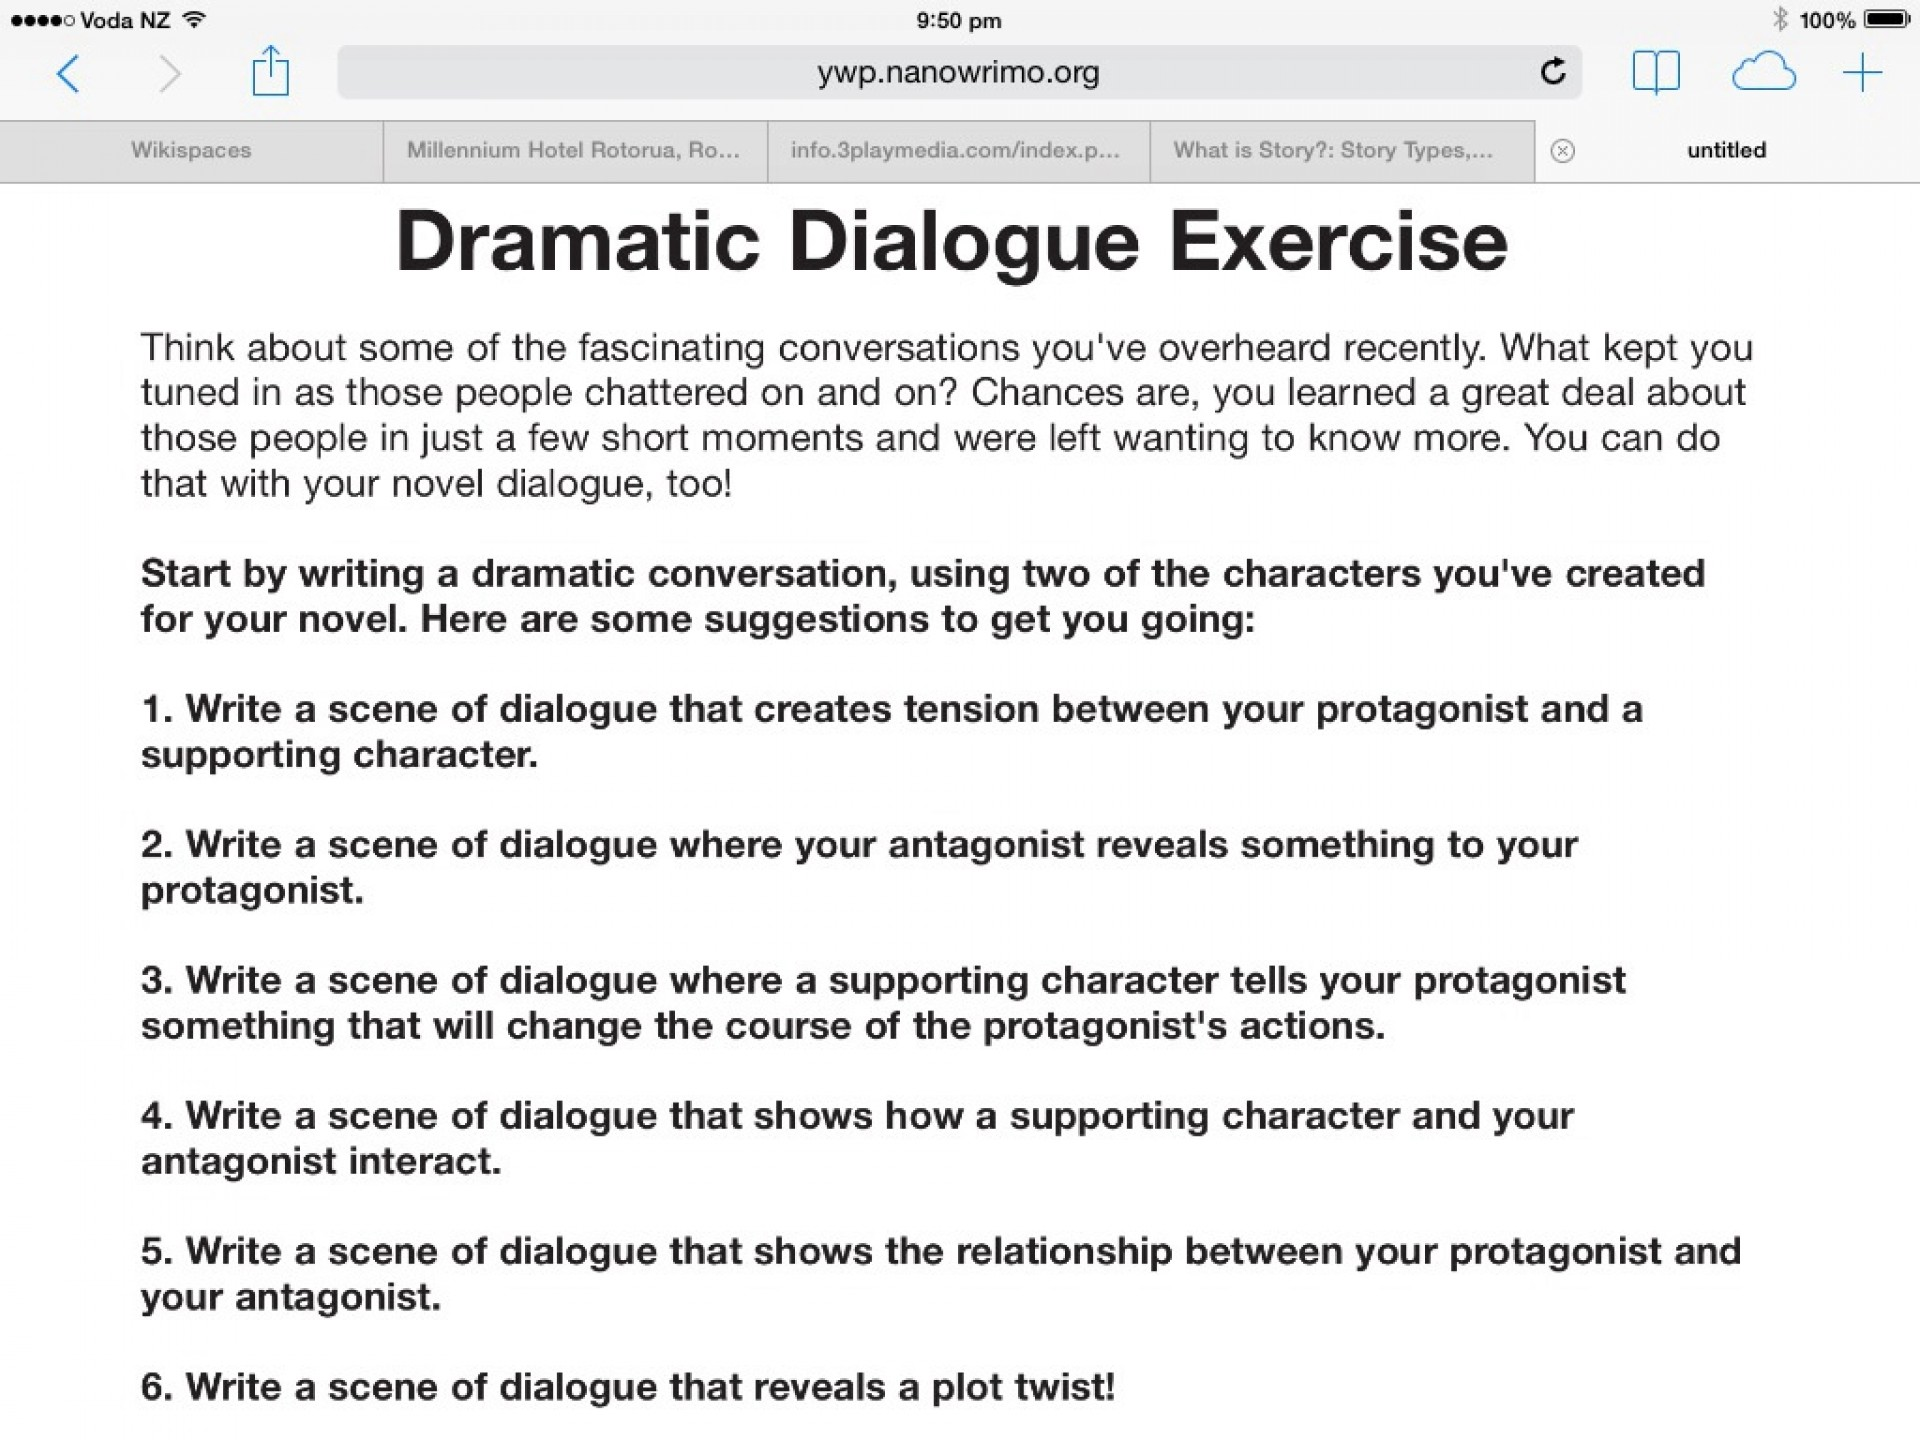 015 Image6 Essay Example How To Write Dialogue In Singular An Between Two Characters Narrative 1920